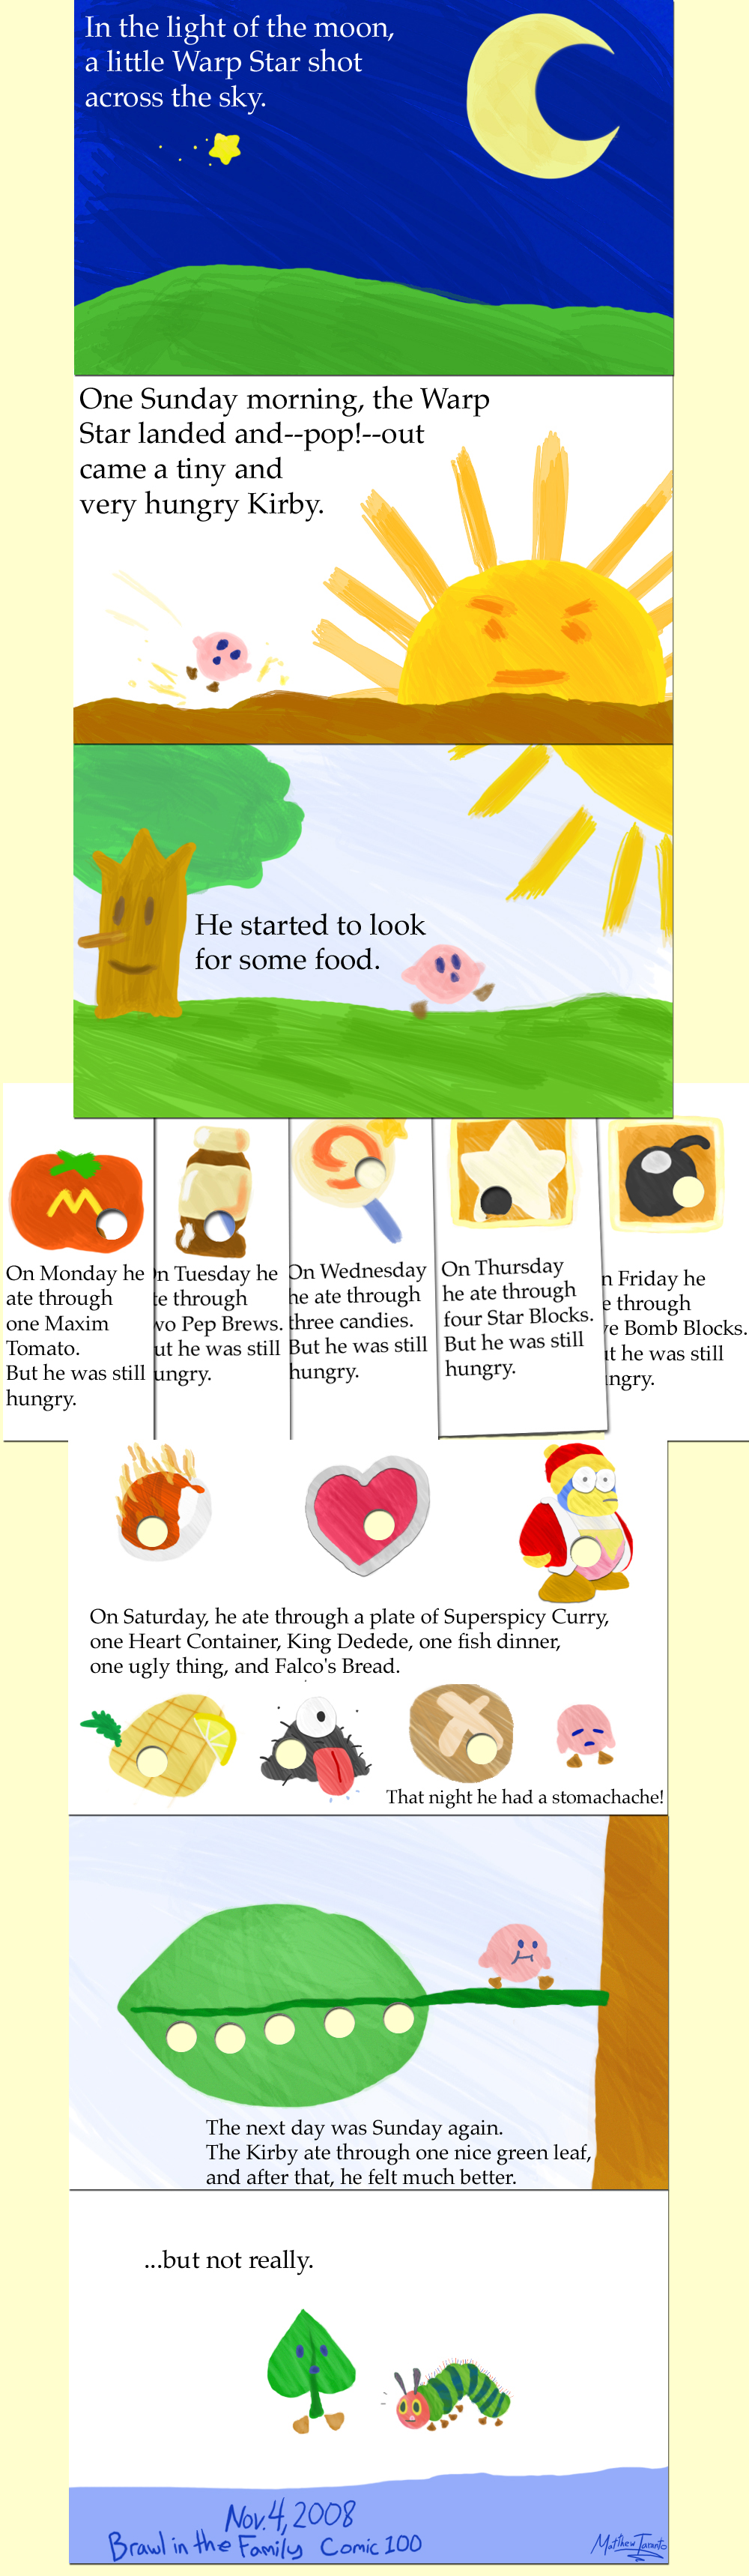 100 – The Very Hungry Kirby